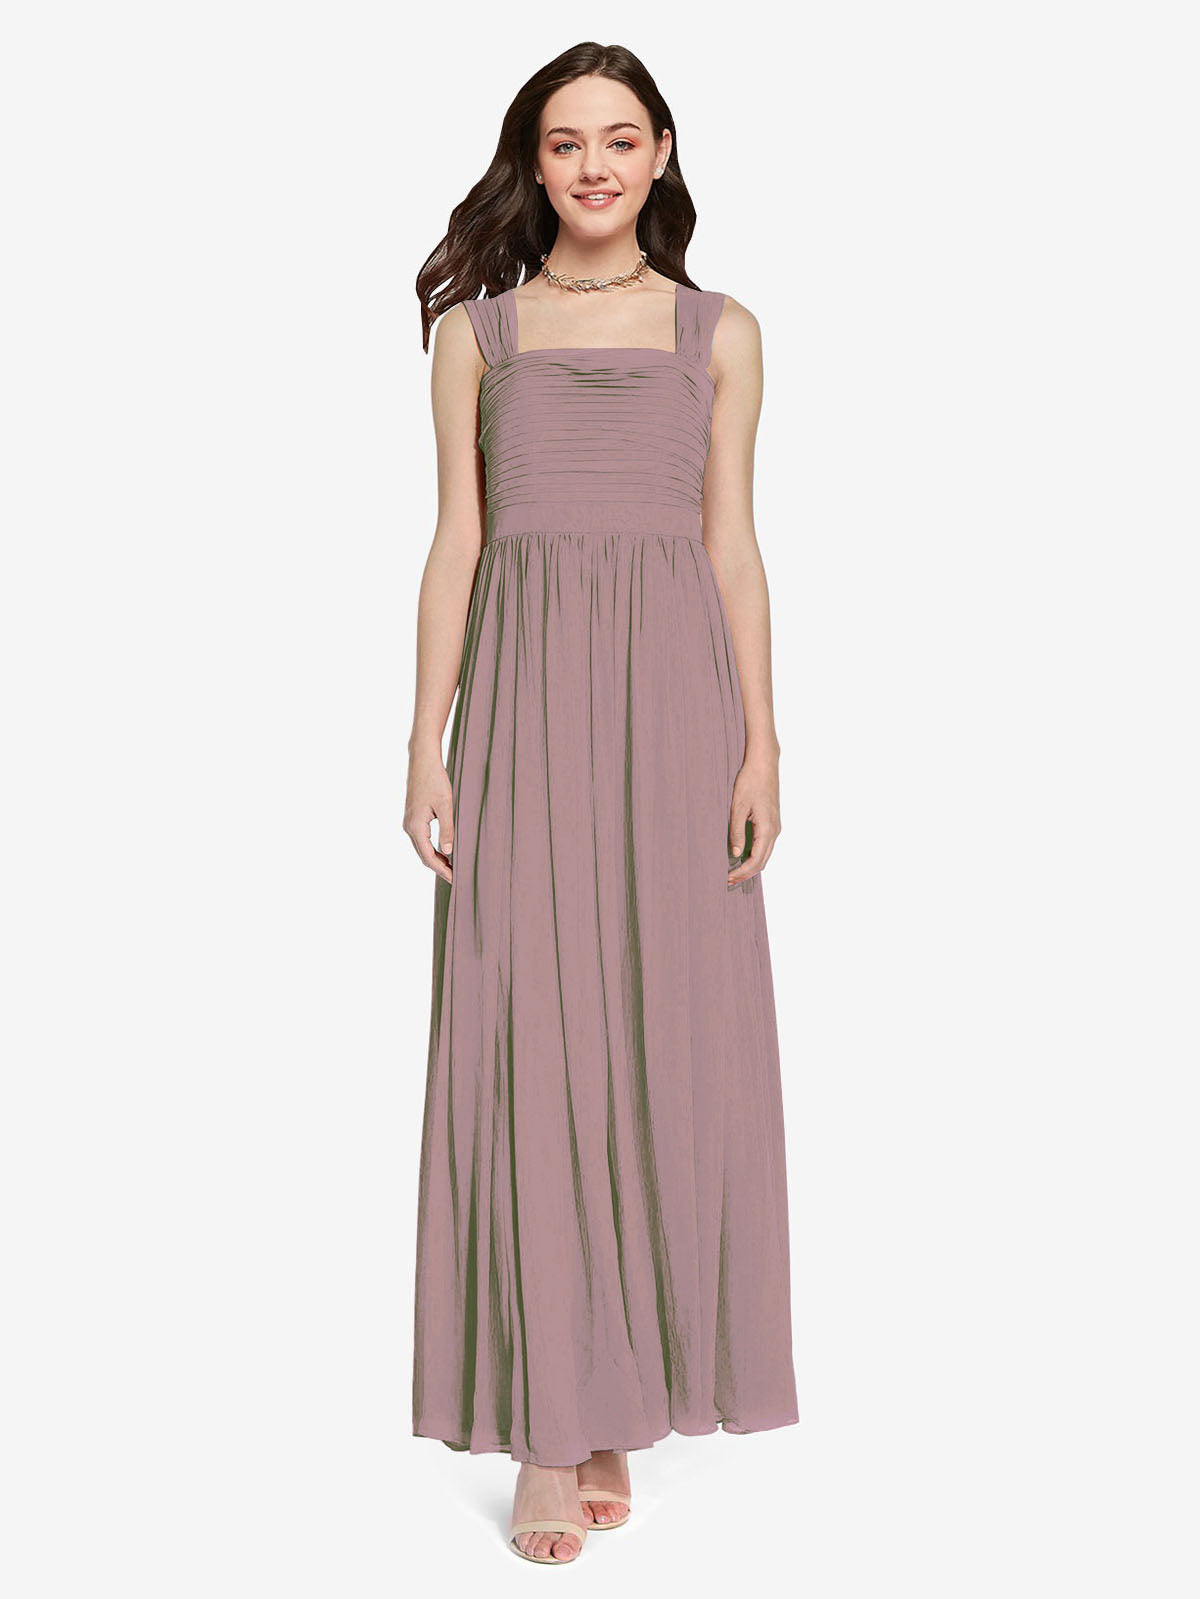 Long A-Line Square Sleeveless Dusty Rose Chiffon Bridesmaid Dress Aldridge